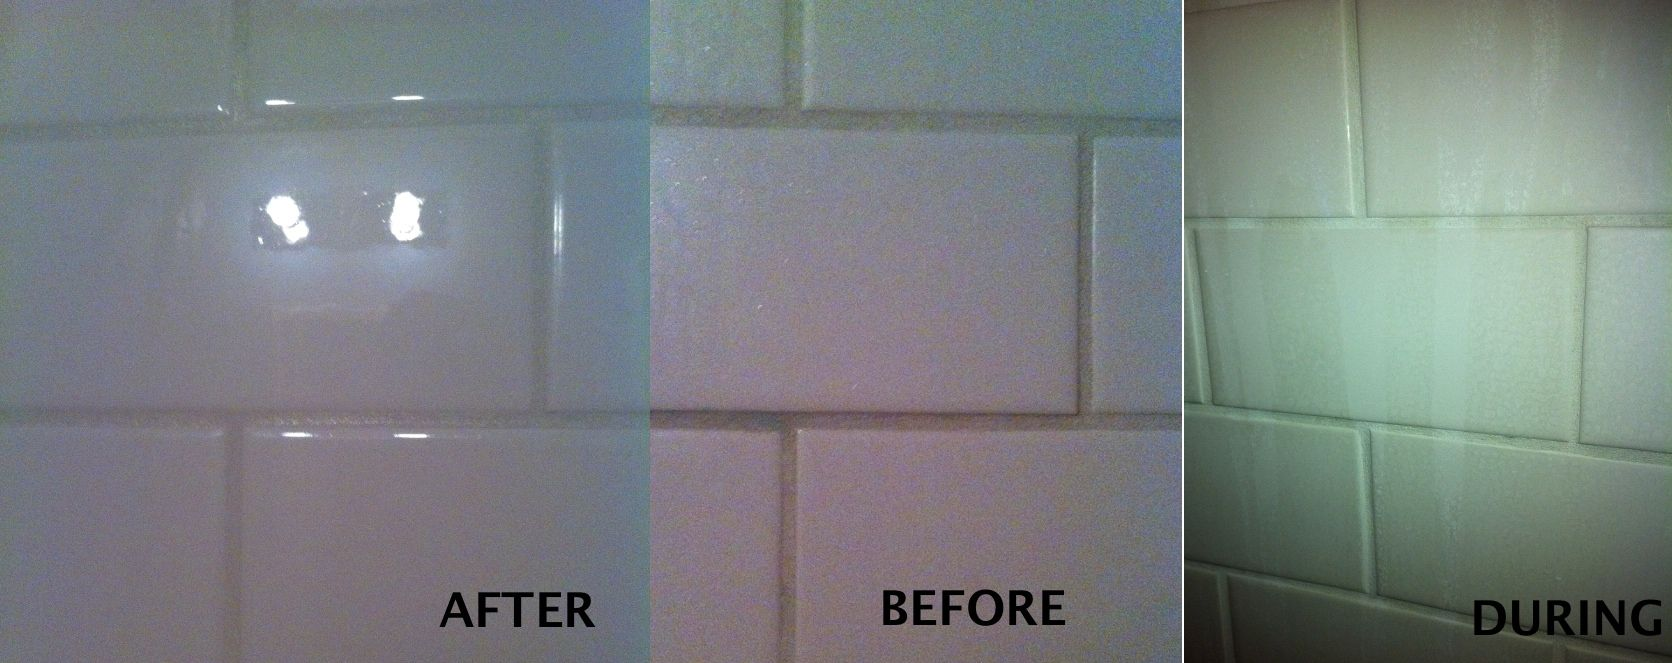 Tub And Shower Magic Recipe With Images Cleaning Hacks